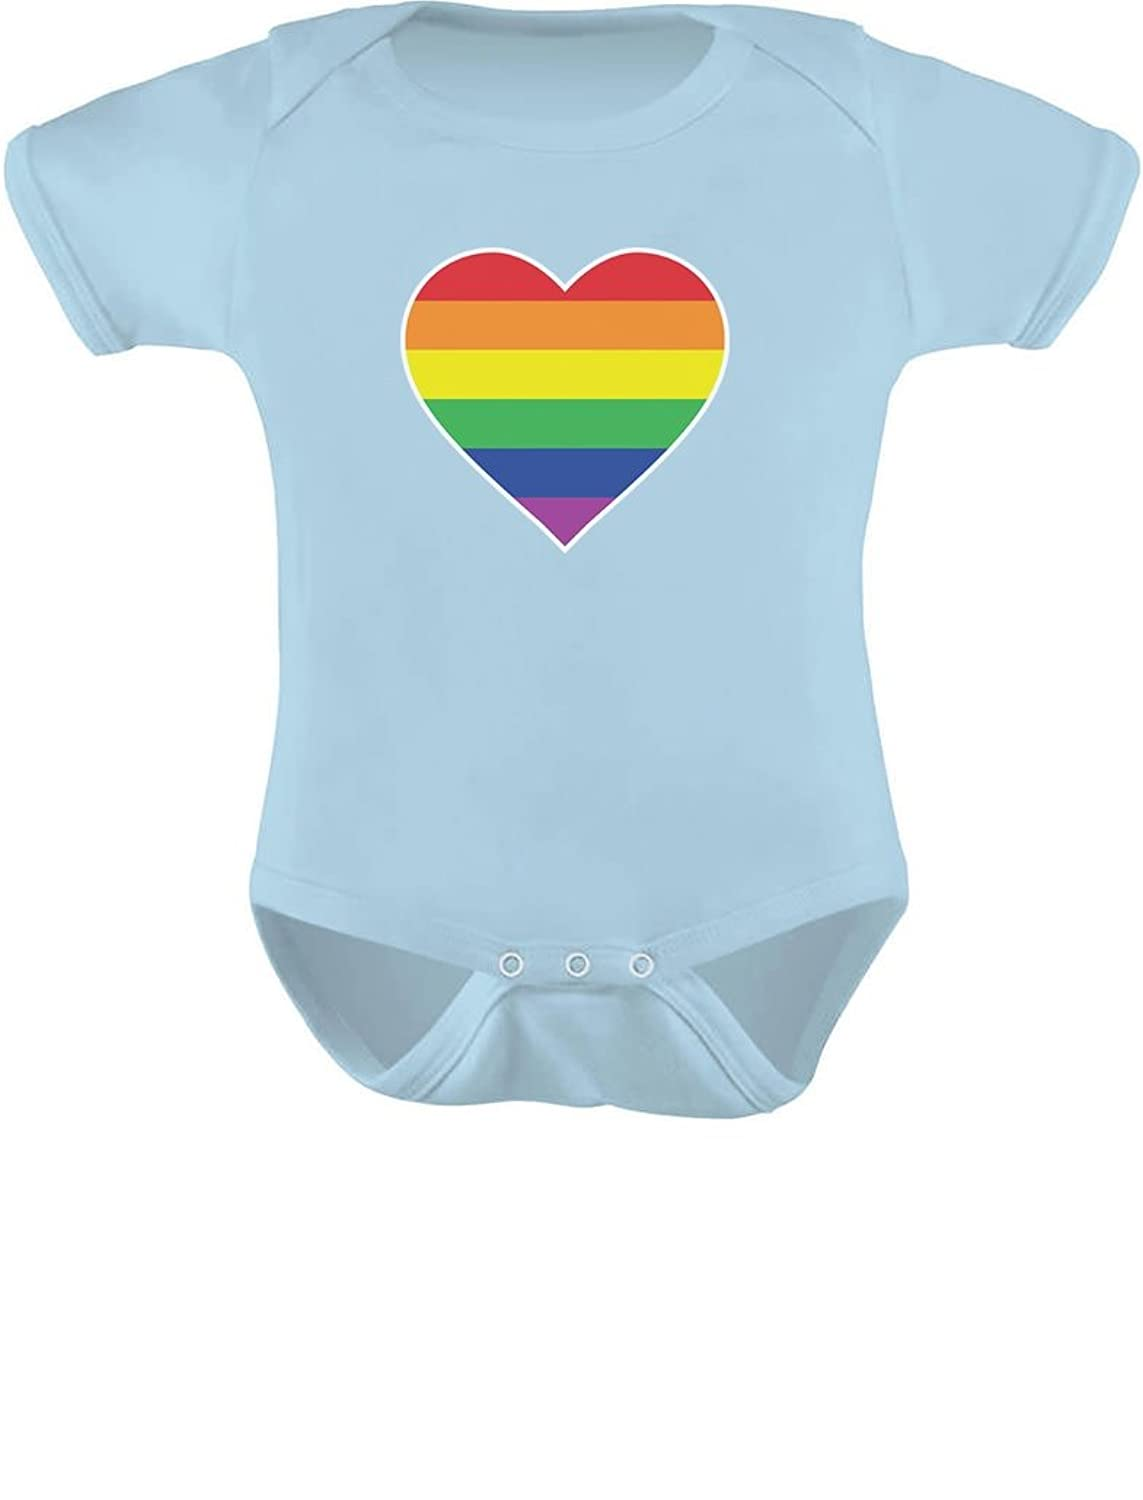 07d54663 Best gift idea for a baby shower. Official Teestars Merchandise. Printed in  the USA Love Heart Gay Pride Rainbow Flag Baby Shirts.